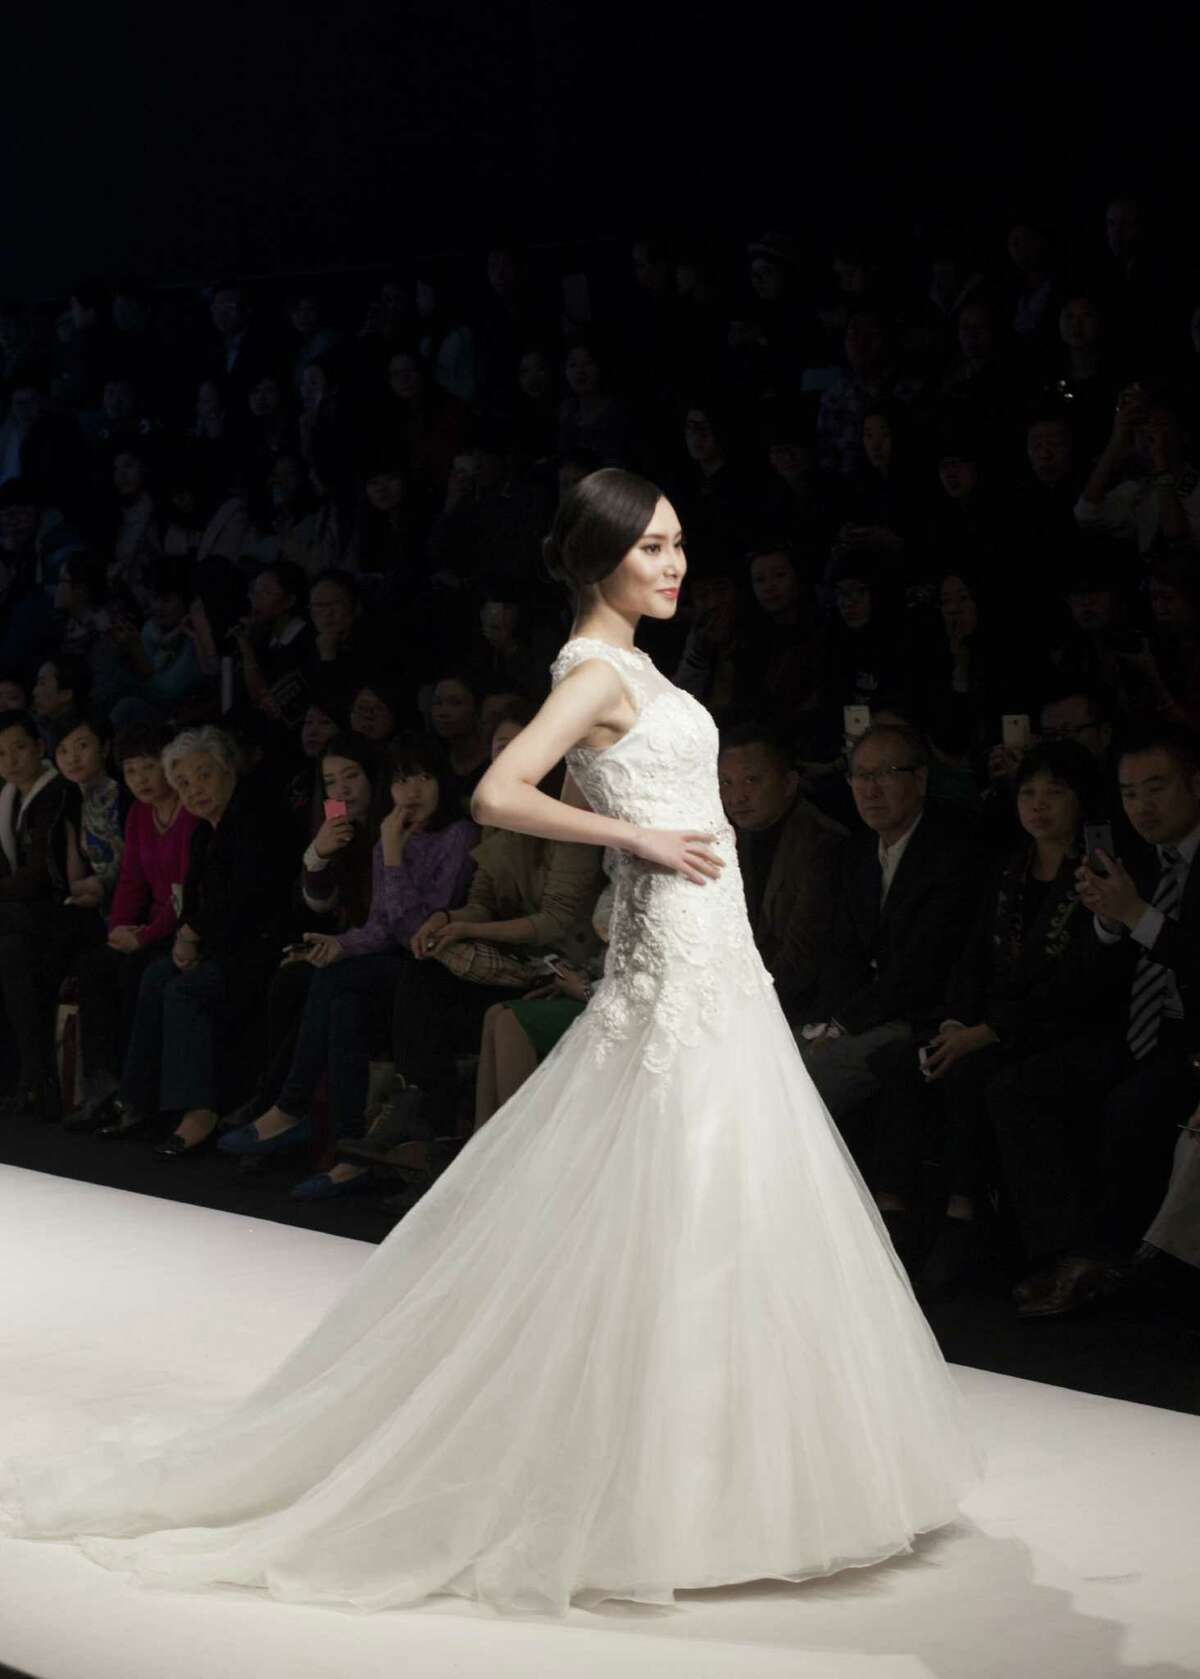 A model showcases designs on the runway at Famory Bridal Collection show during the Mercedes-Benz China Fashion Week Spring/Summer 2015 at Beijing Hotel on October 26, 2014 in Beijing, China. (Photo by Katharina Hesse/Anadolu Agency/Getty Images)